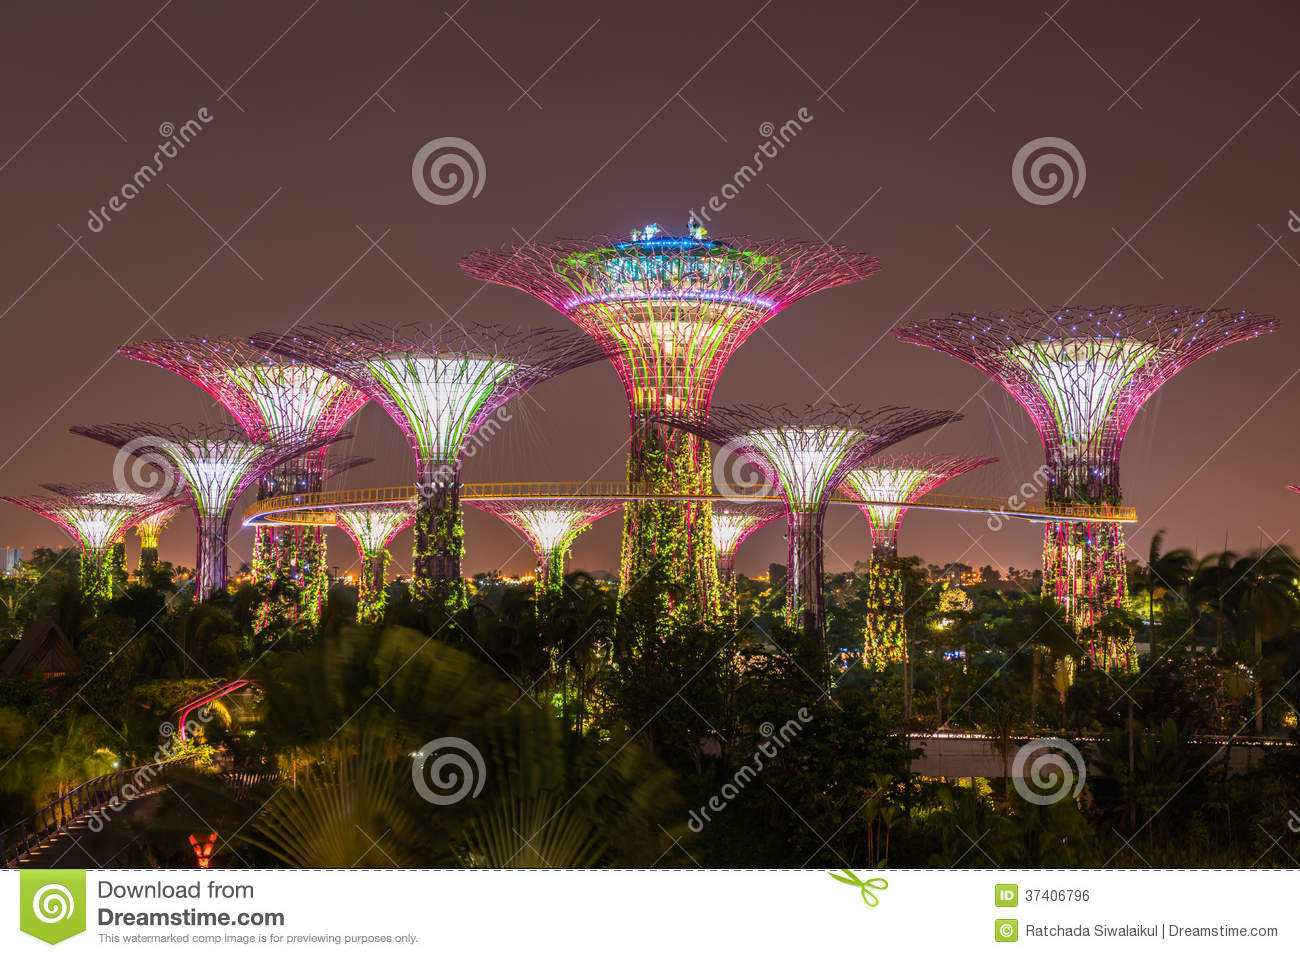 Garden By The Bay Mrt gardenthe bay mrt station singaporeoct 6 day view of supertree